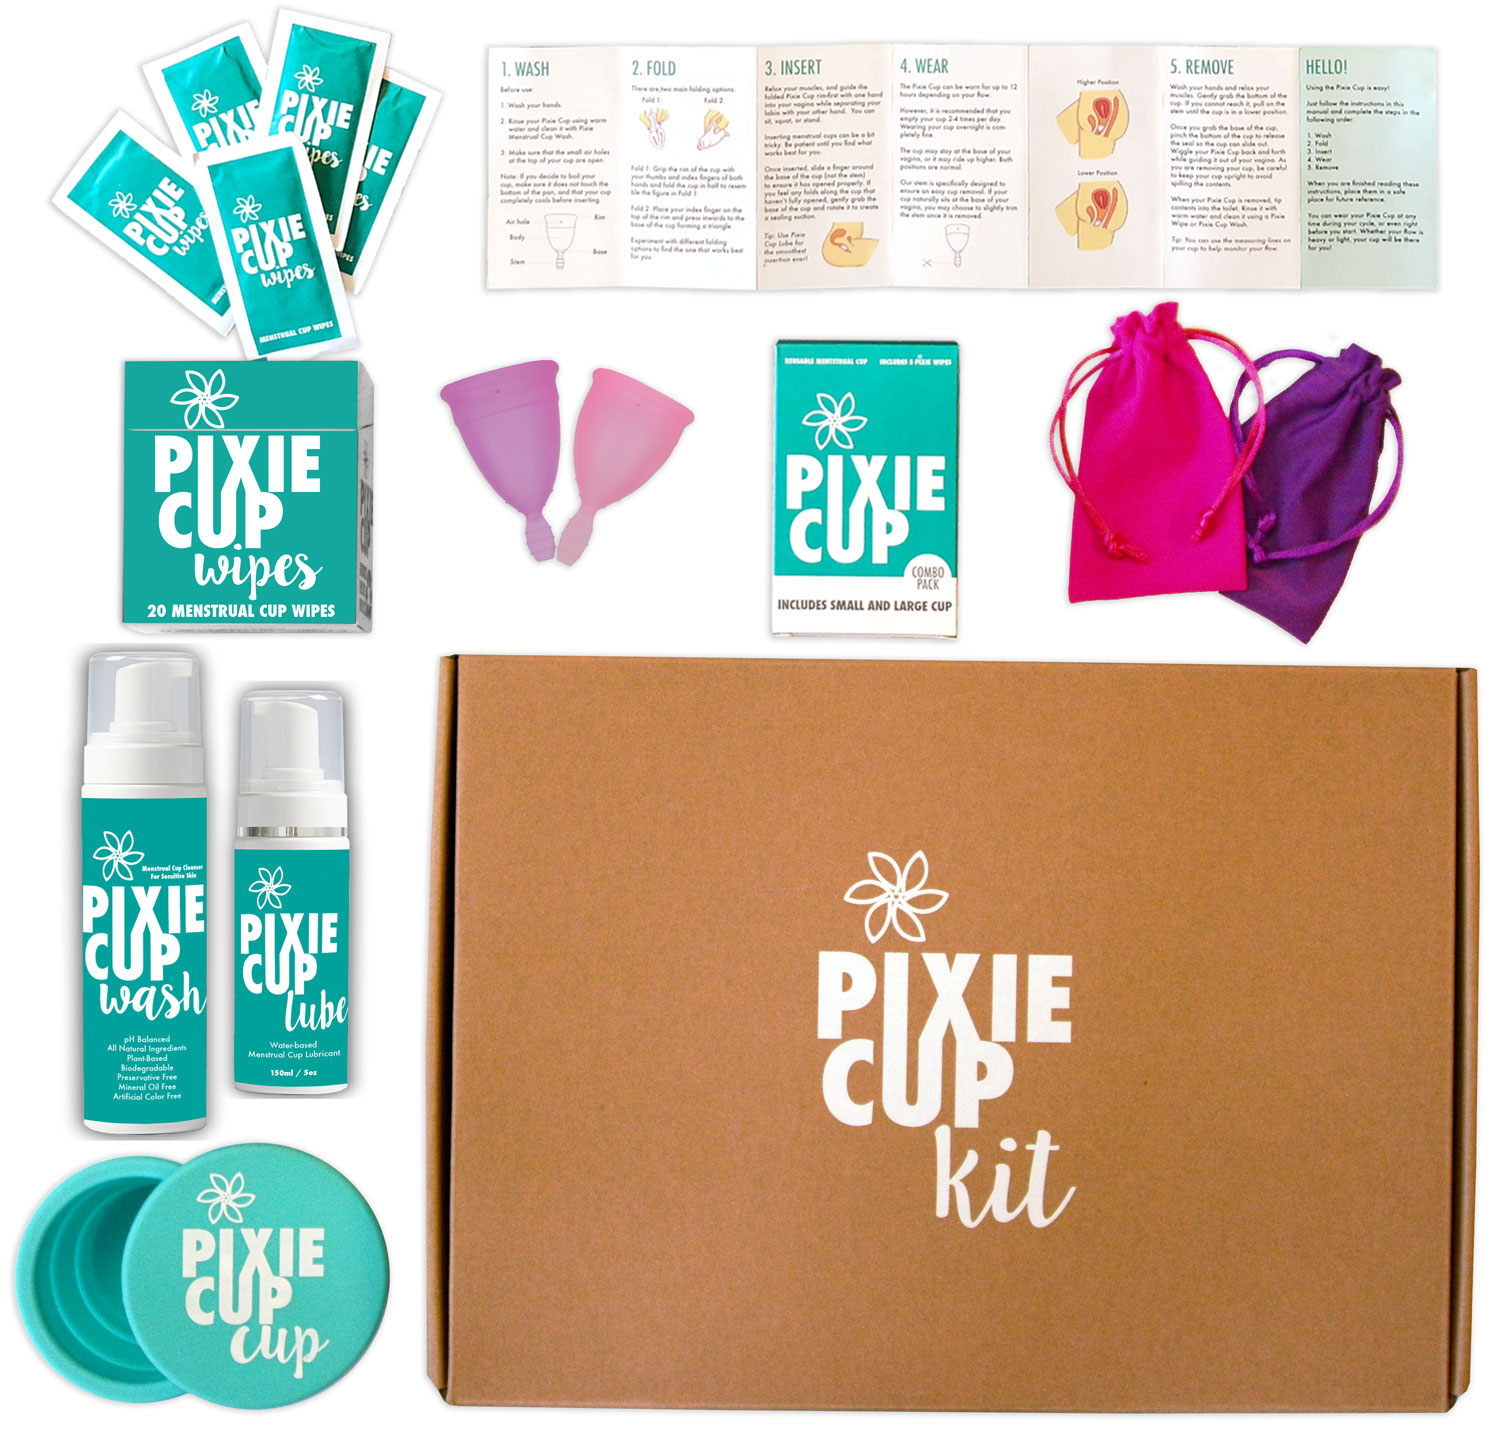 Everything you need to make the switch to pixie menstrual cups